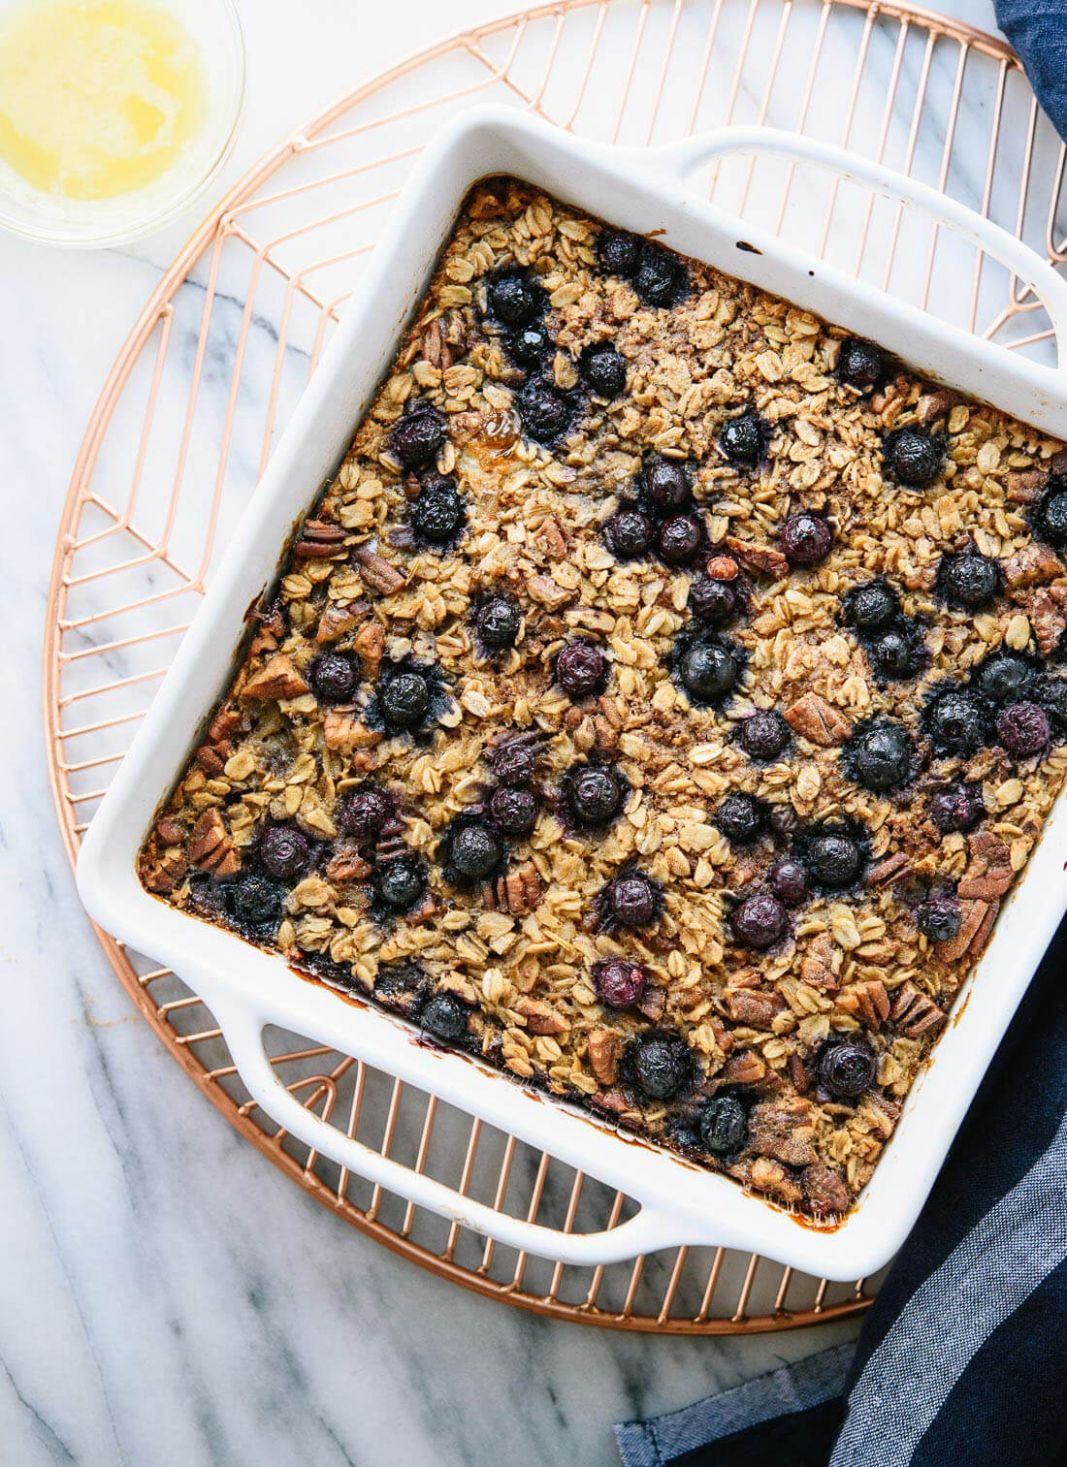 Blueberry Baked Oatmeal - Healthy Recipes With Blueberries